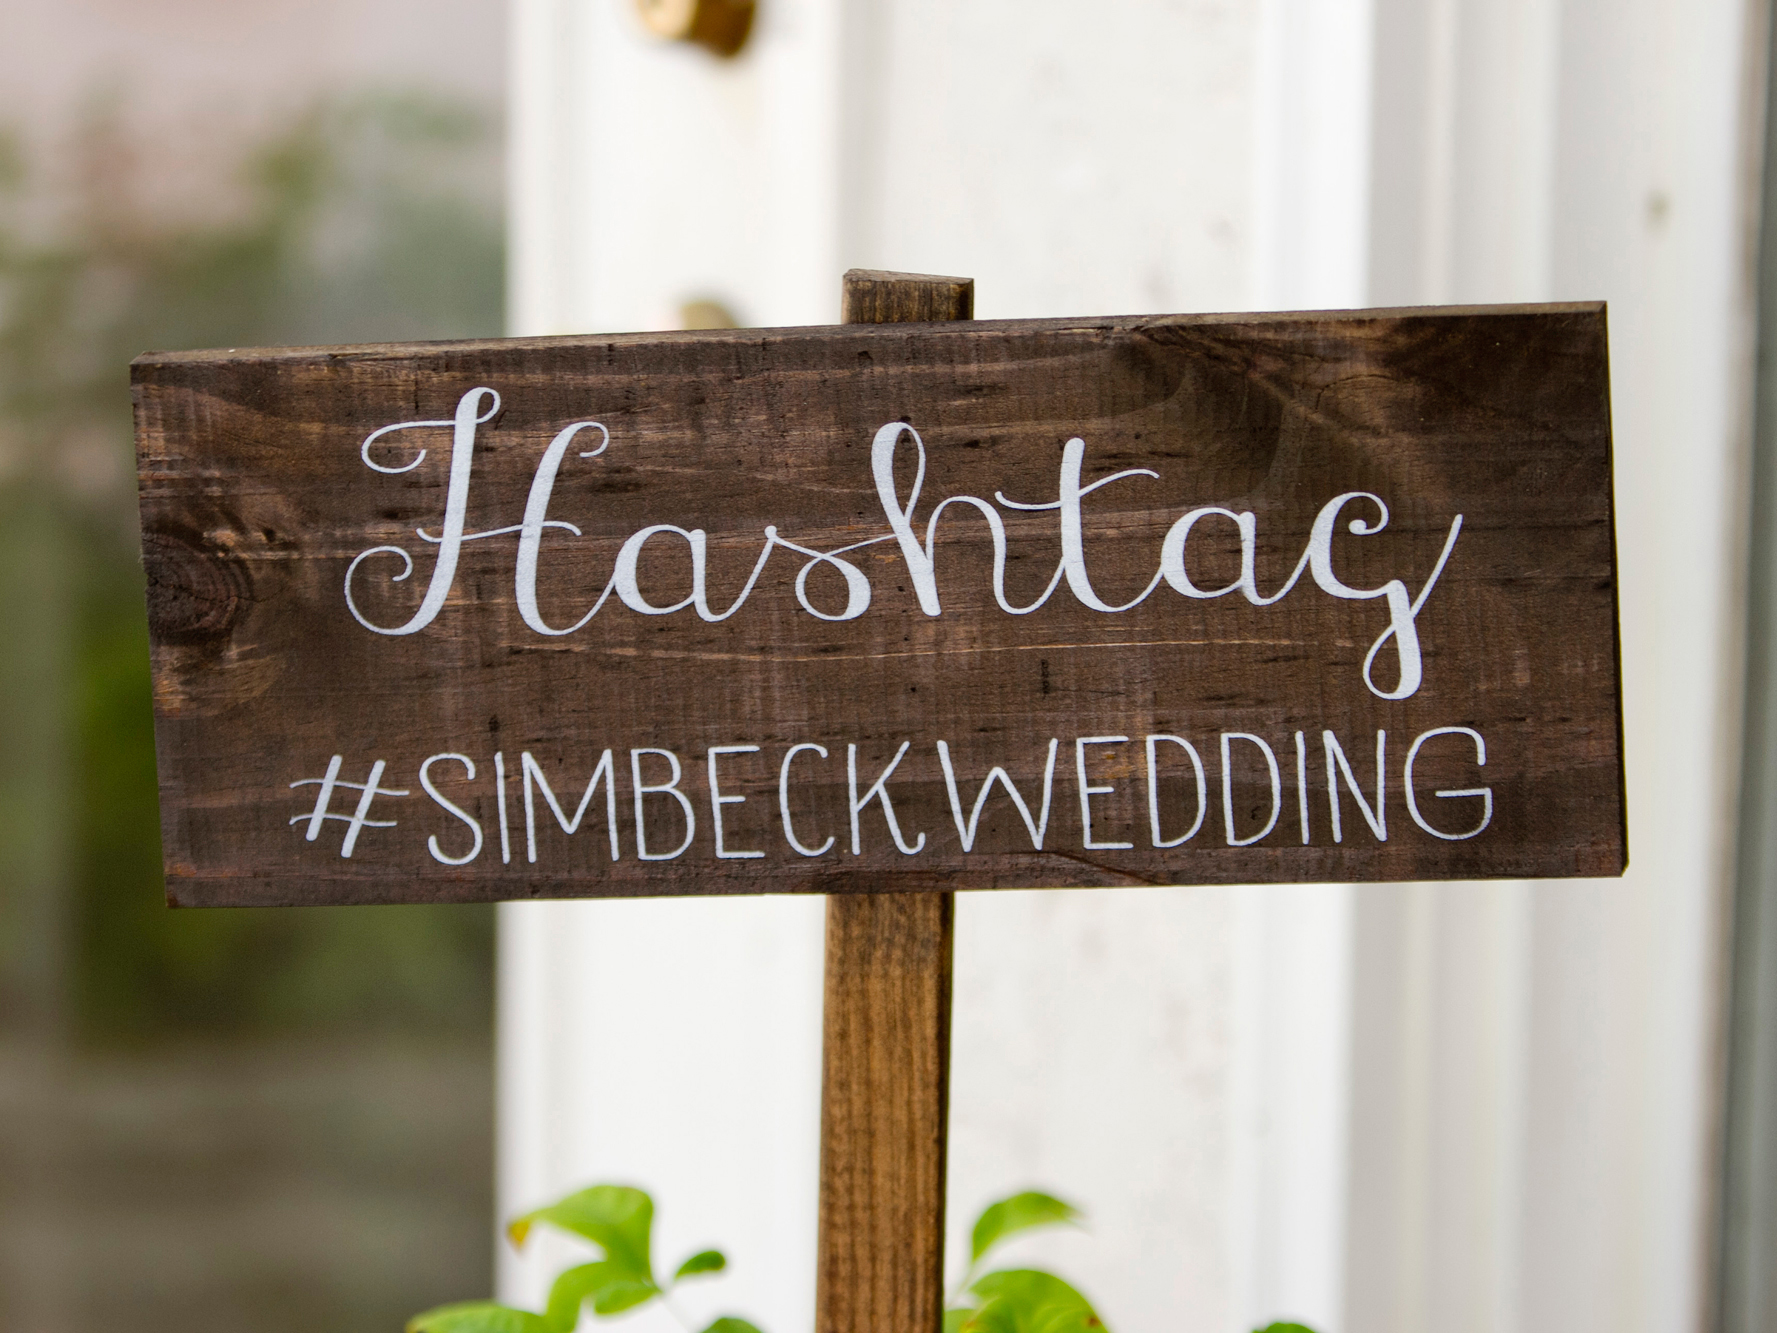 How To Come Up With The Best Wedding Hashtag Ever